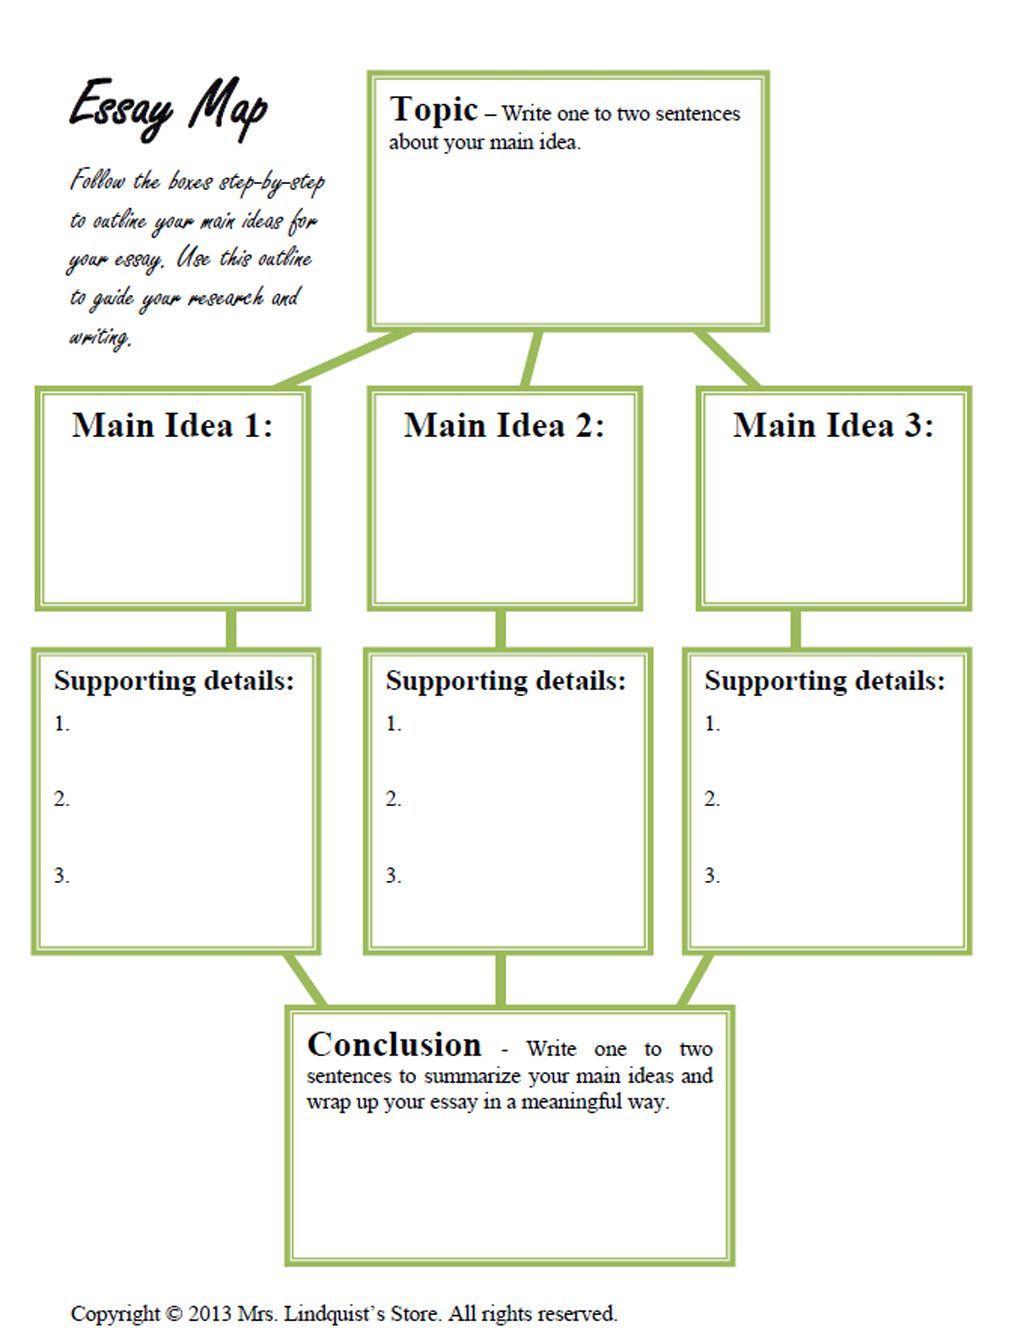 Using graphic organizers and rubrics to aid students with expository